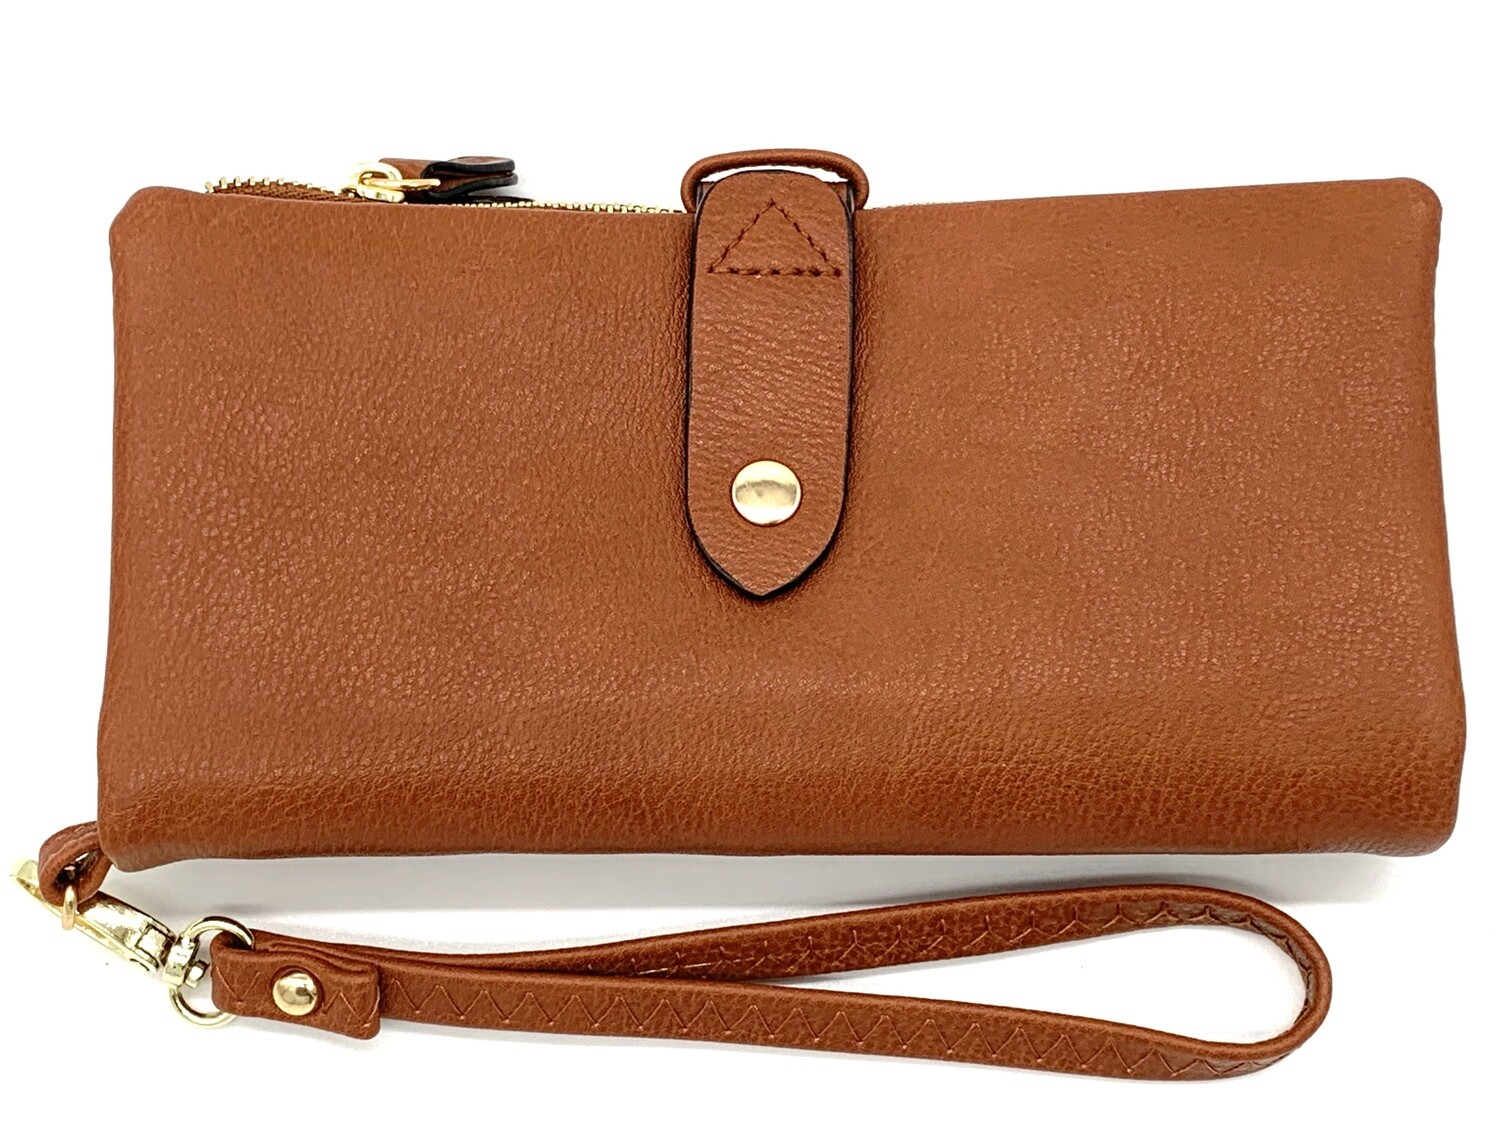 5268 Cell Phone Wristlet/Wallet camel